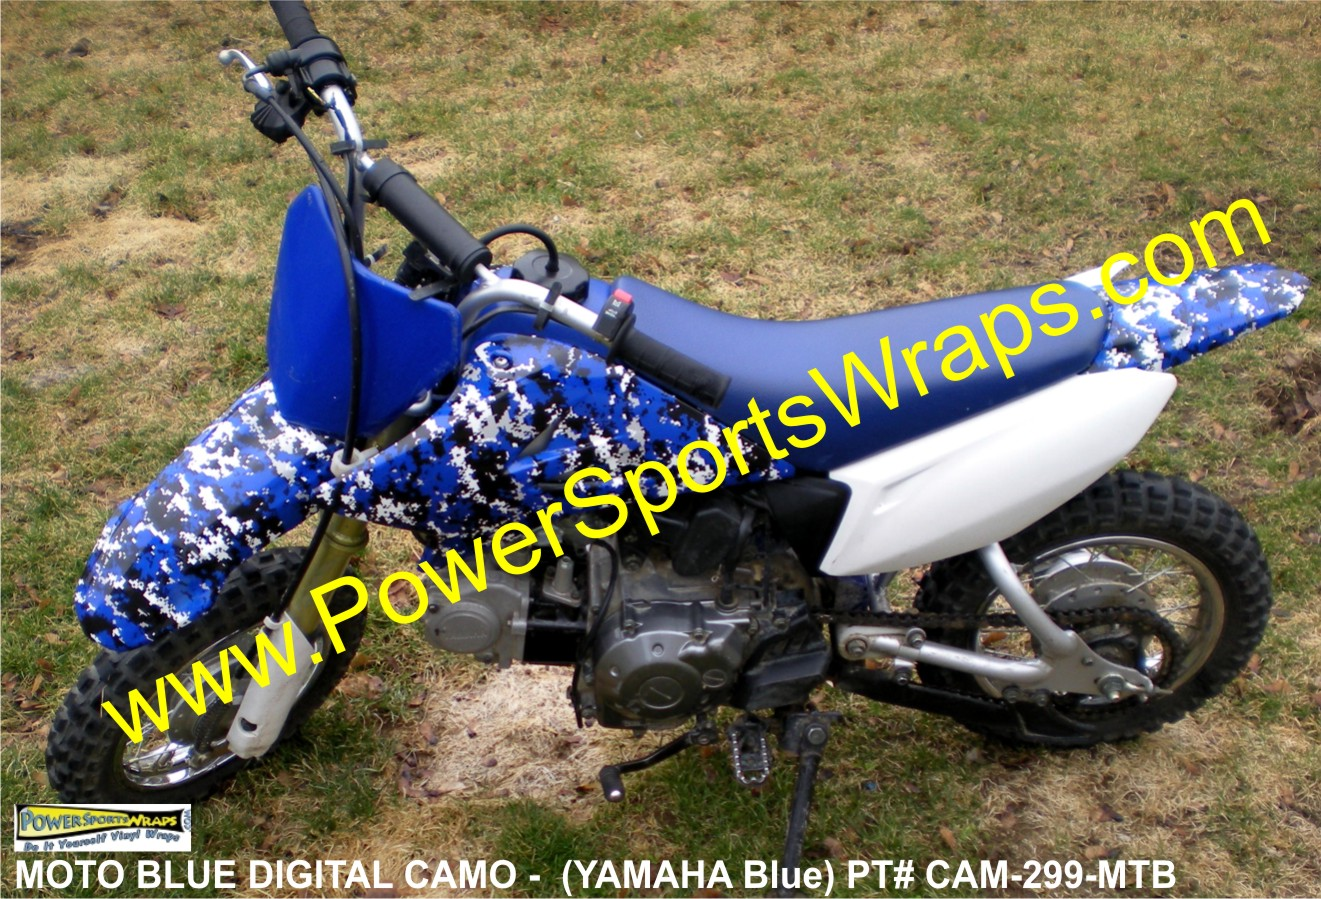 YAMAHA, YAMAHA CAMO, YAMAHA BLUE CAMO, DIGITAL CAMO, BLUE DIGITAL CAMO, CAMOUFLAGE BLUE, CAMOFLAGE, MOTORCYCLE, DIGITAL CAMO, YAMAHA DECALS, YAMAHA CAMO DECALS, BLUE CAMO DECAL, PIT BIKE DECALS